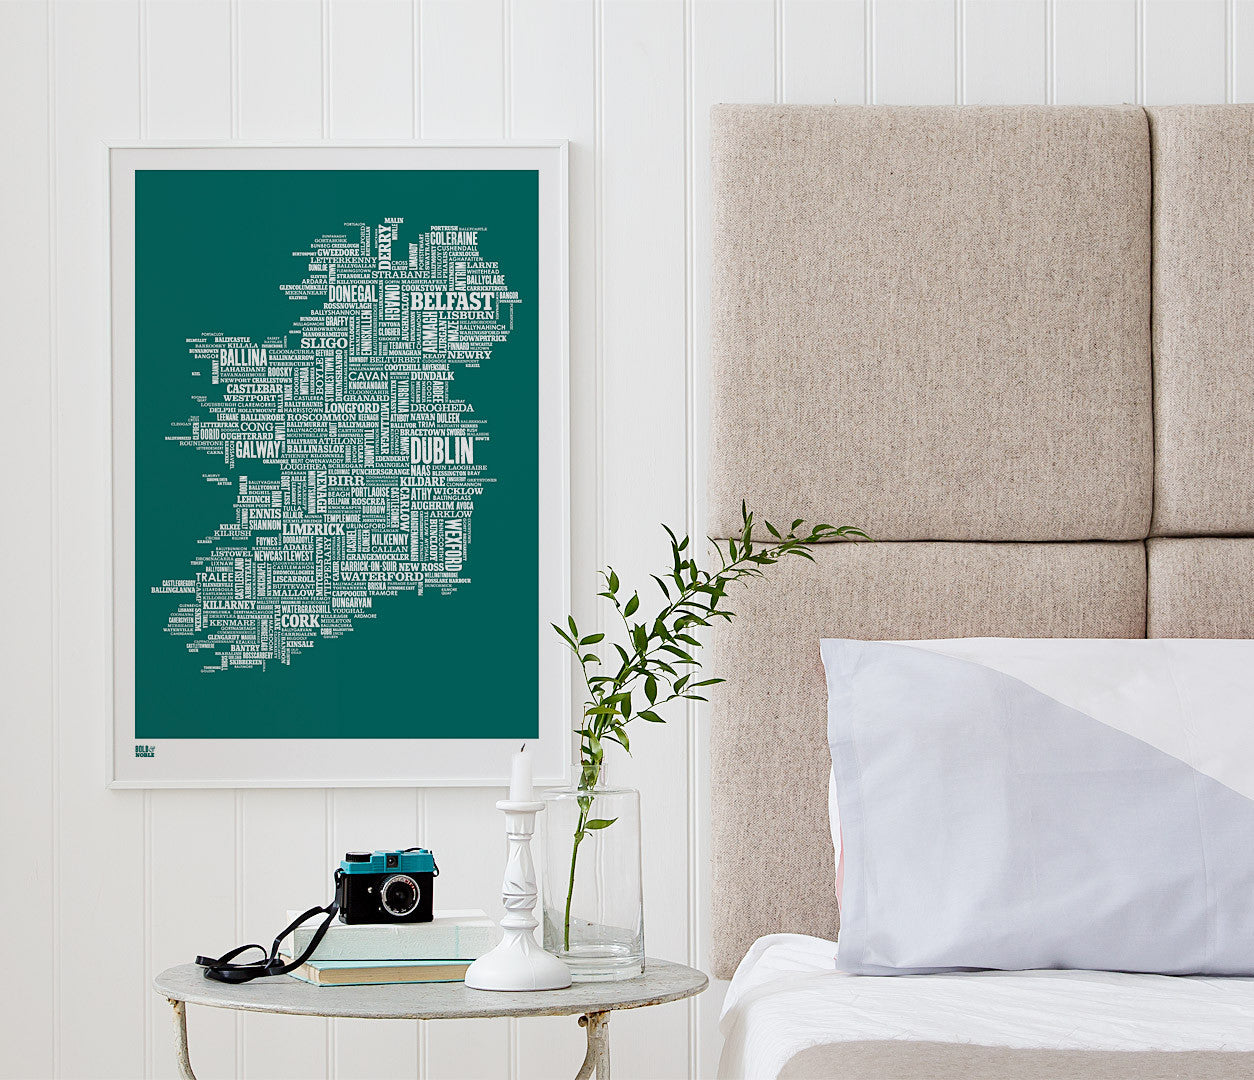 Wordle Ireland Map Wall Art Print, Screen Printed Poster in Emerald Green